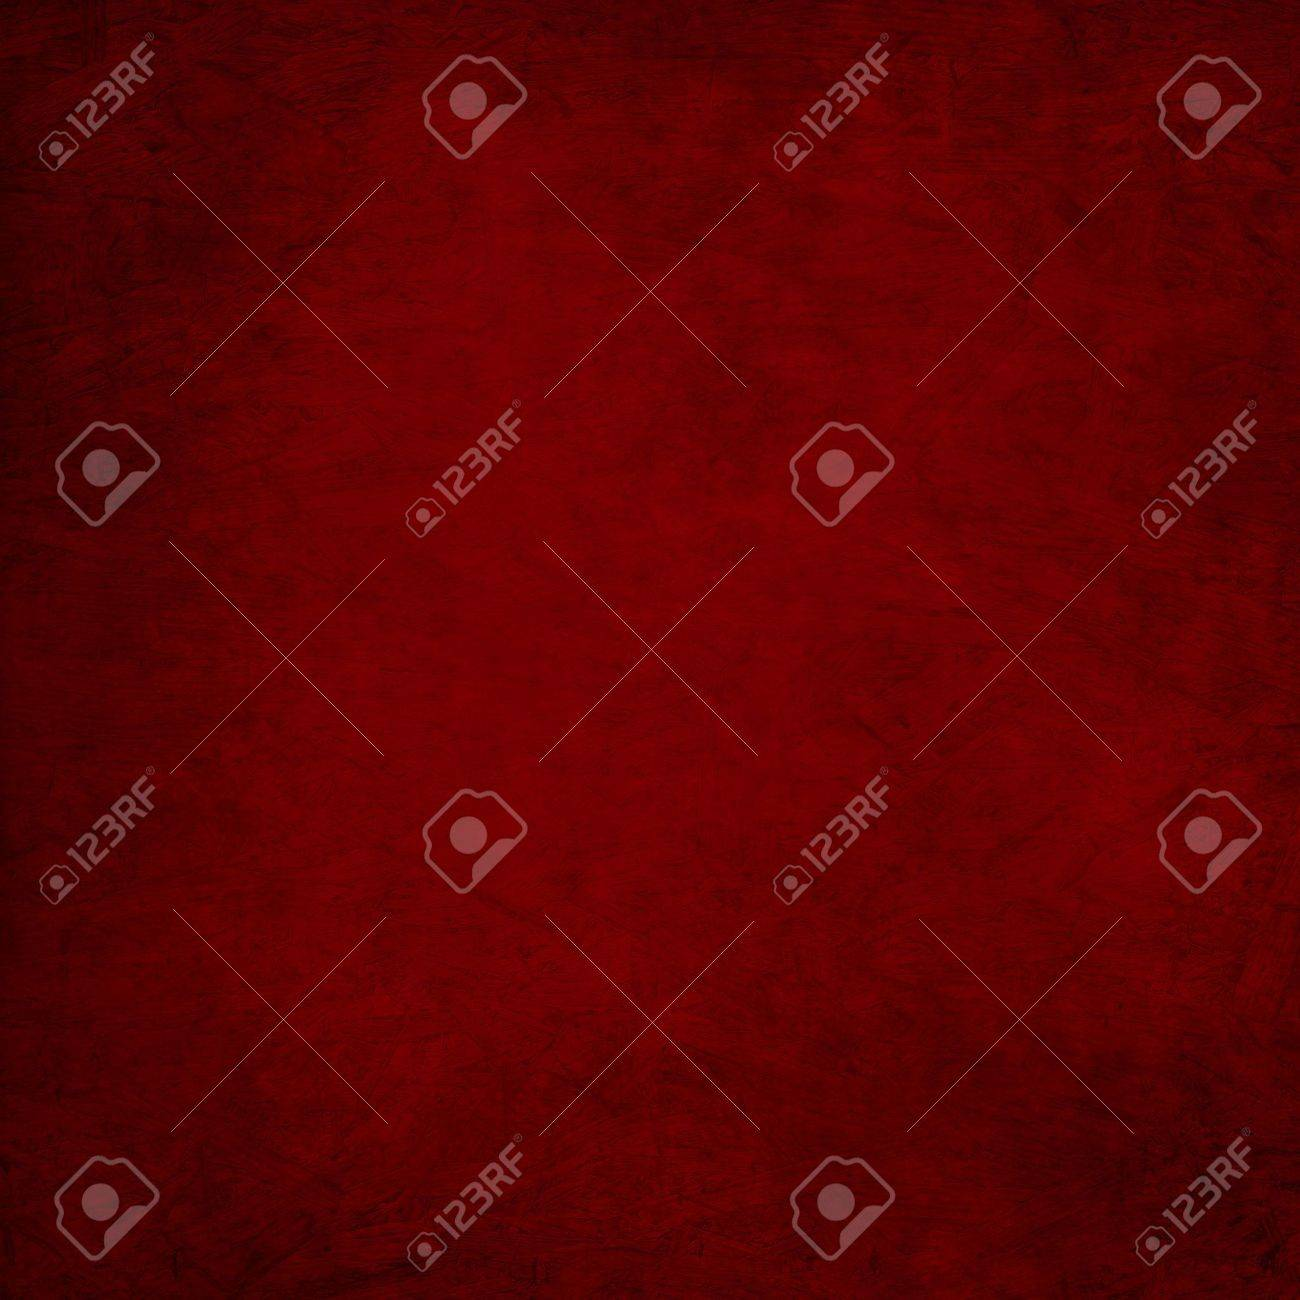 red vintage background Stock Photo - 9670548